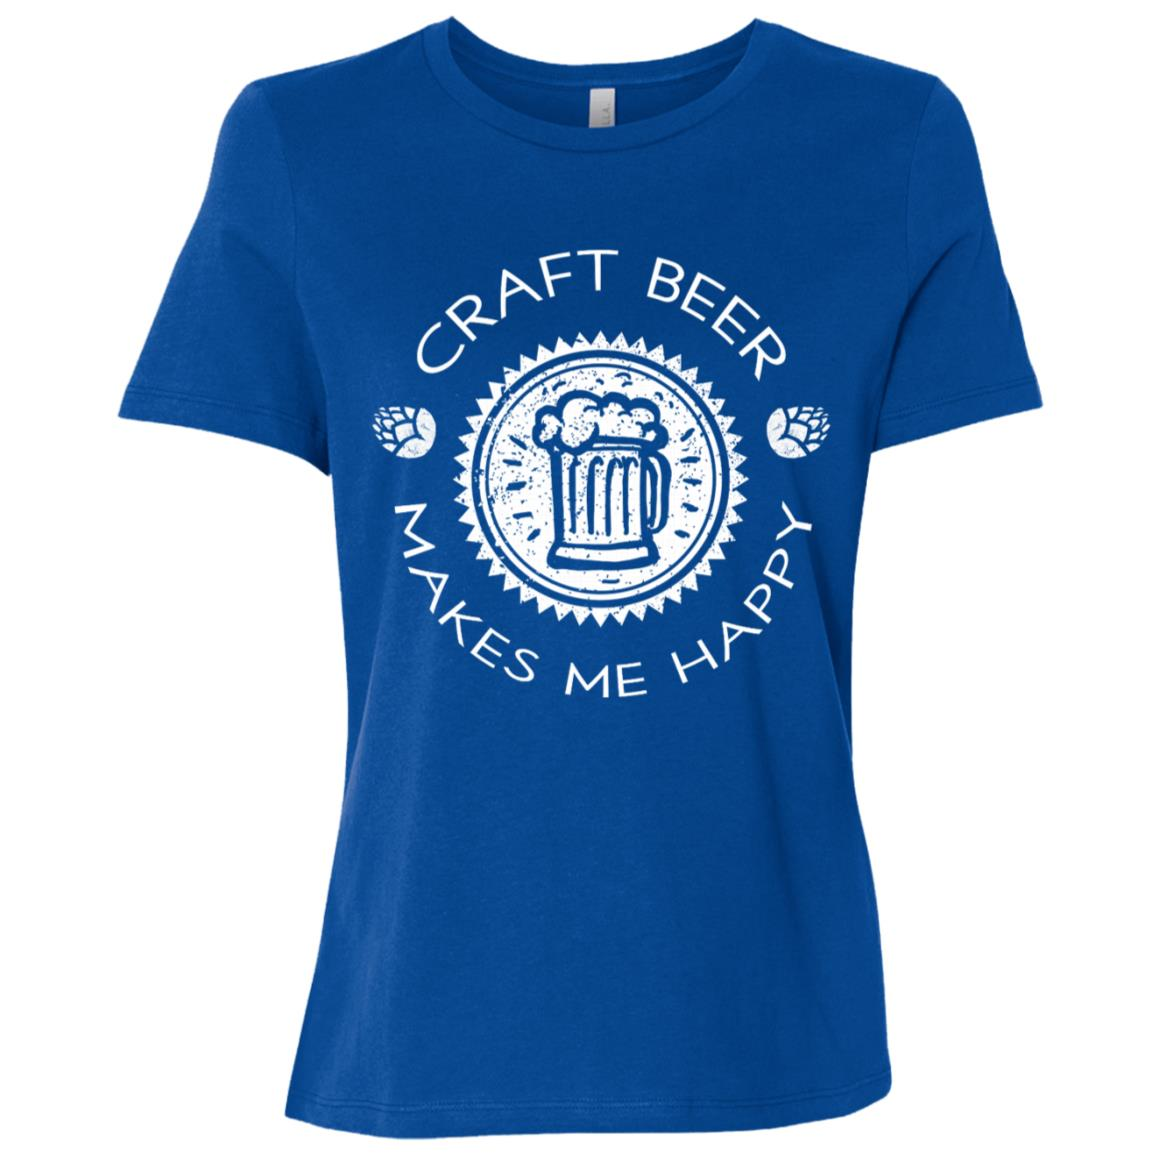 Craft Beer Makes Me Happy Funny Drink Lover Gift Women Short Sleeve T-Shirt